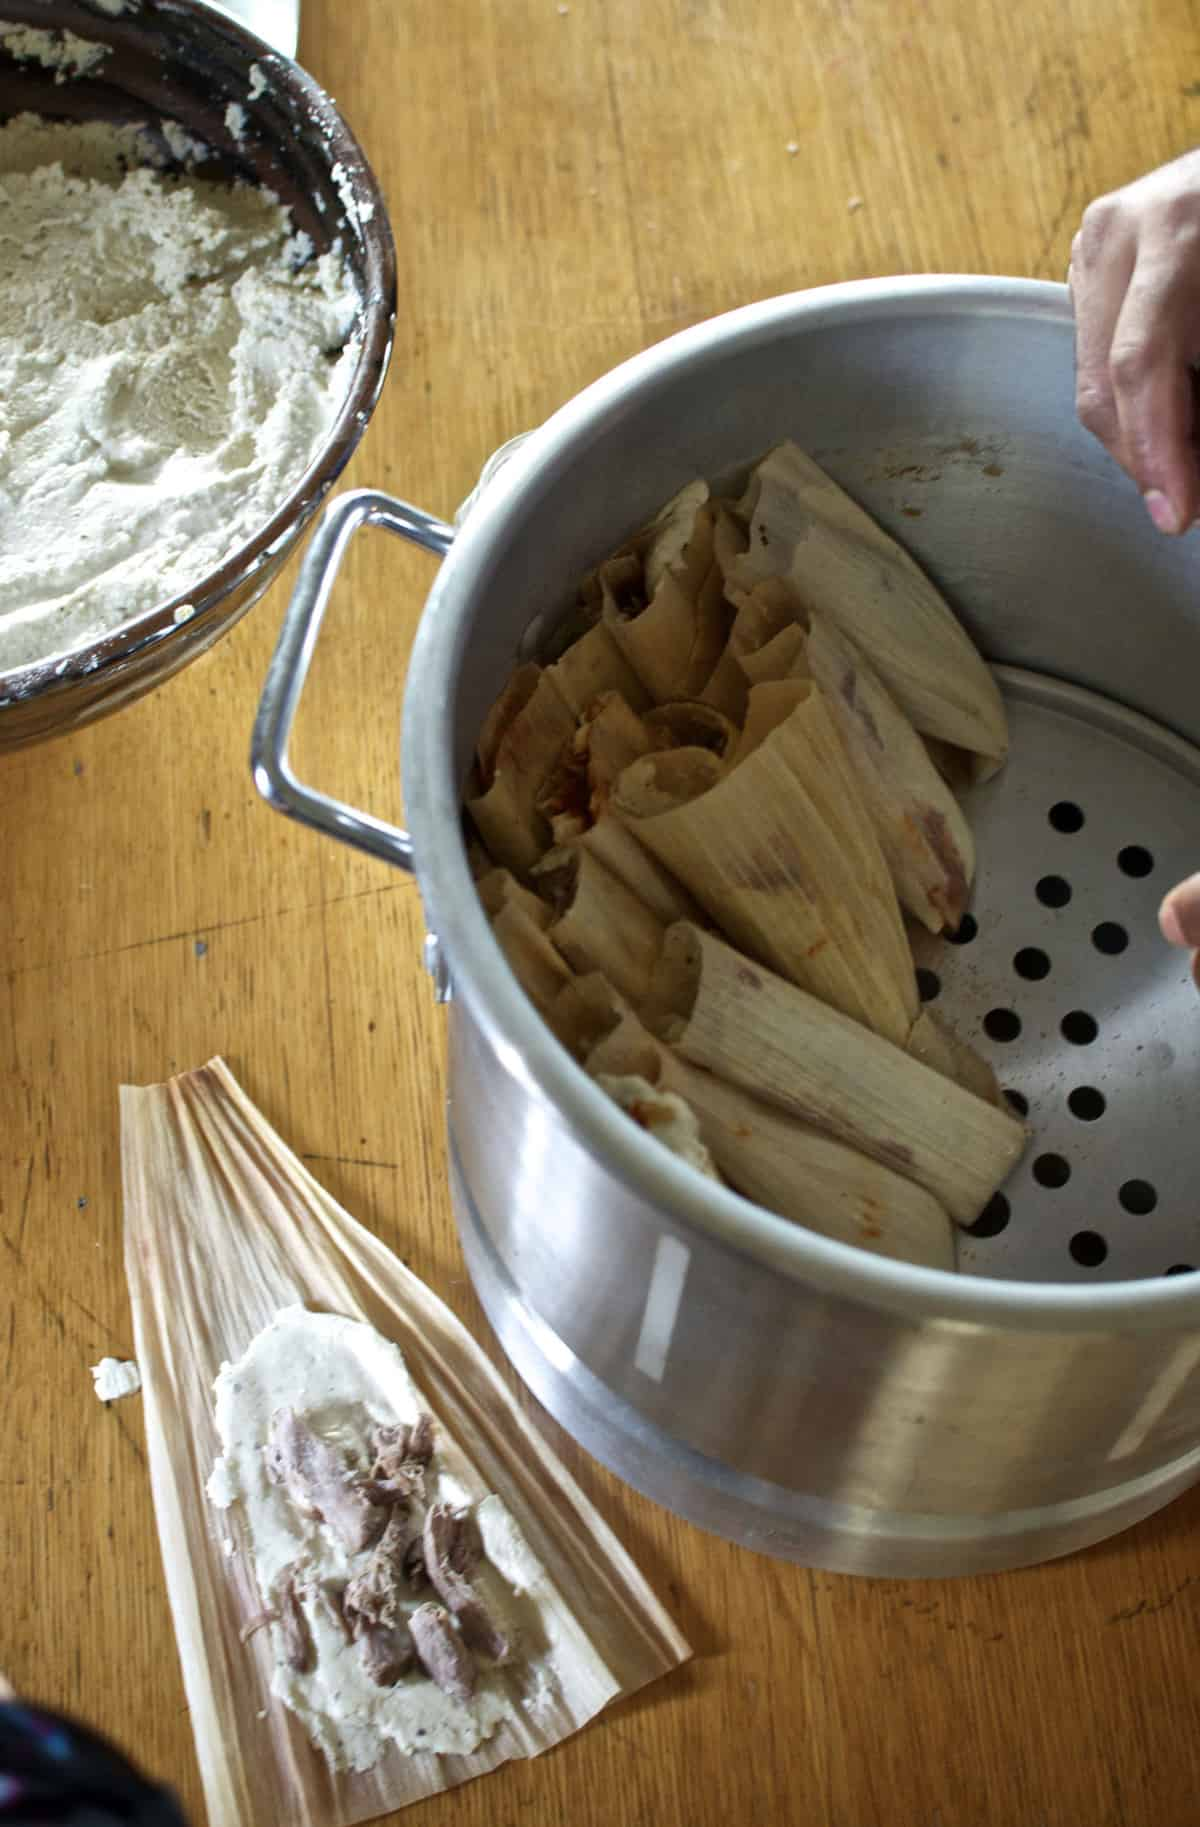 A big pot with tamales inside and a tamal being assembled sitting next to it on a wooden table.